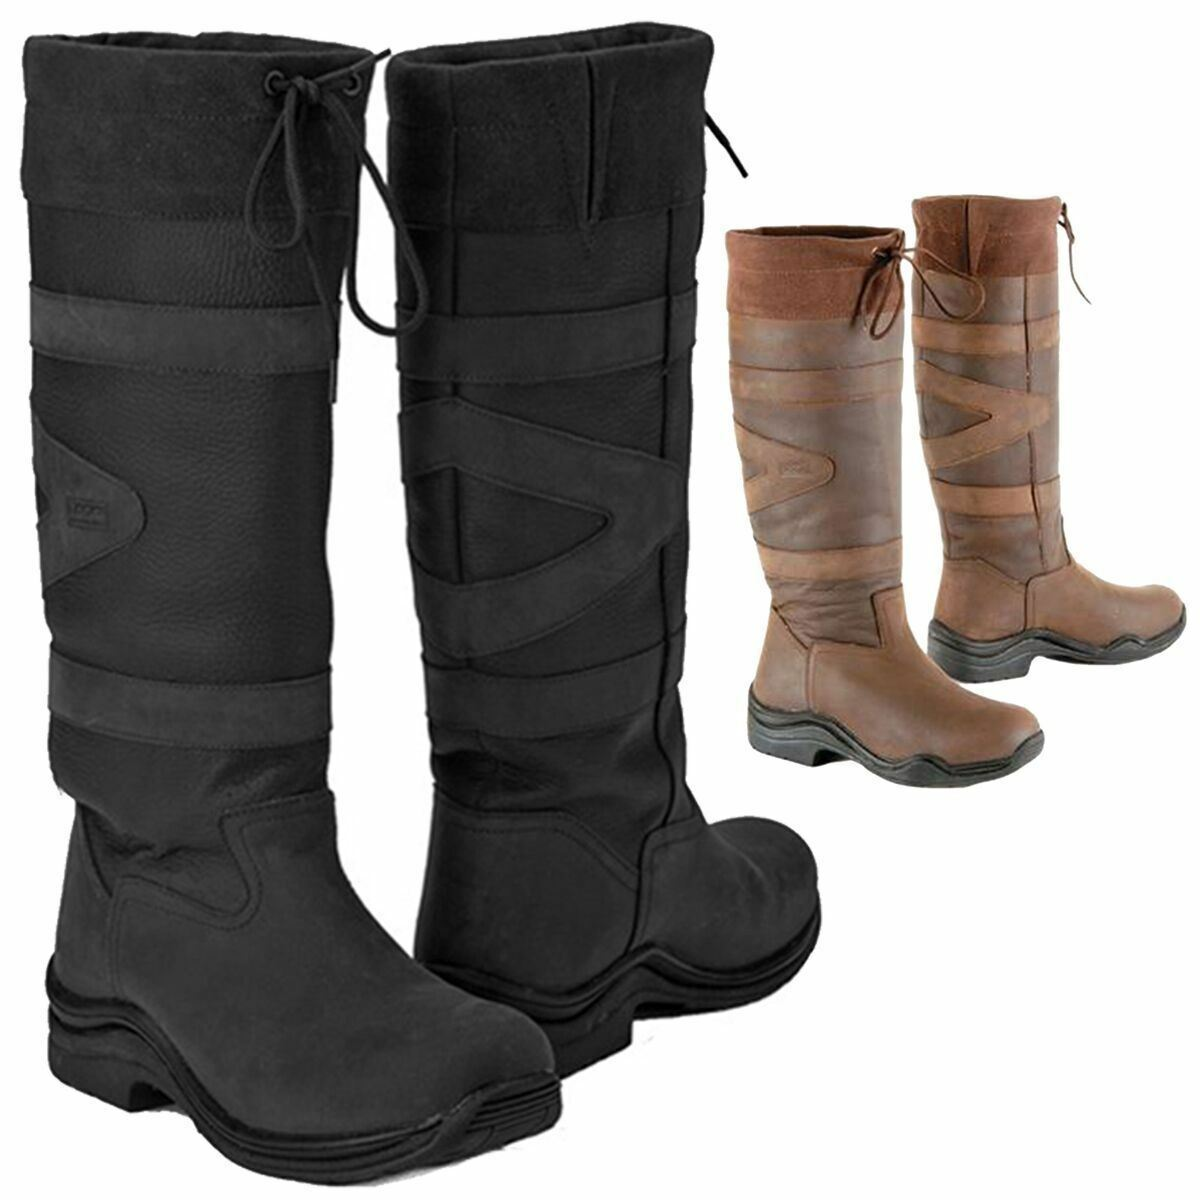 TOGGI EQUESTRIAN CANYON ADULTS LONG  RIDING COUNTRY WALKING BOOT ALL SIZES 36-43  quality assurance